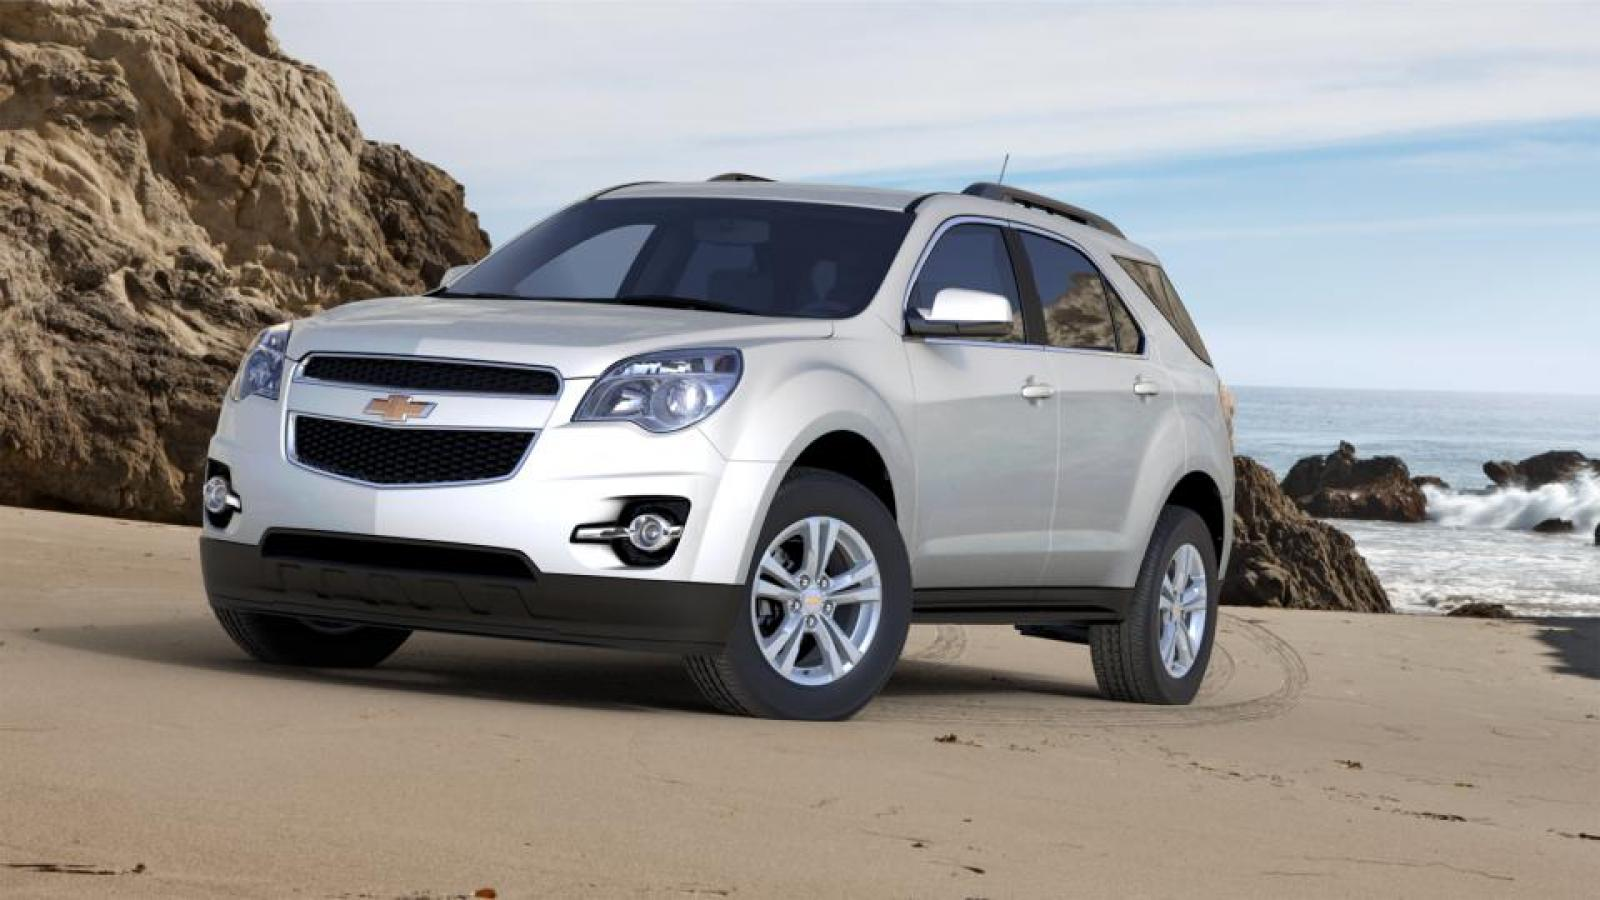 2013 chevrolet equinox information and photos zombiedrive. Black Bedroom Furniture Sets. Home Design Ideas